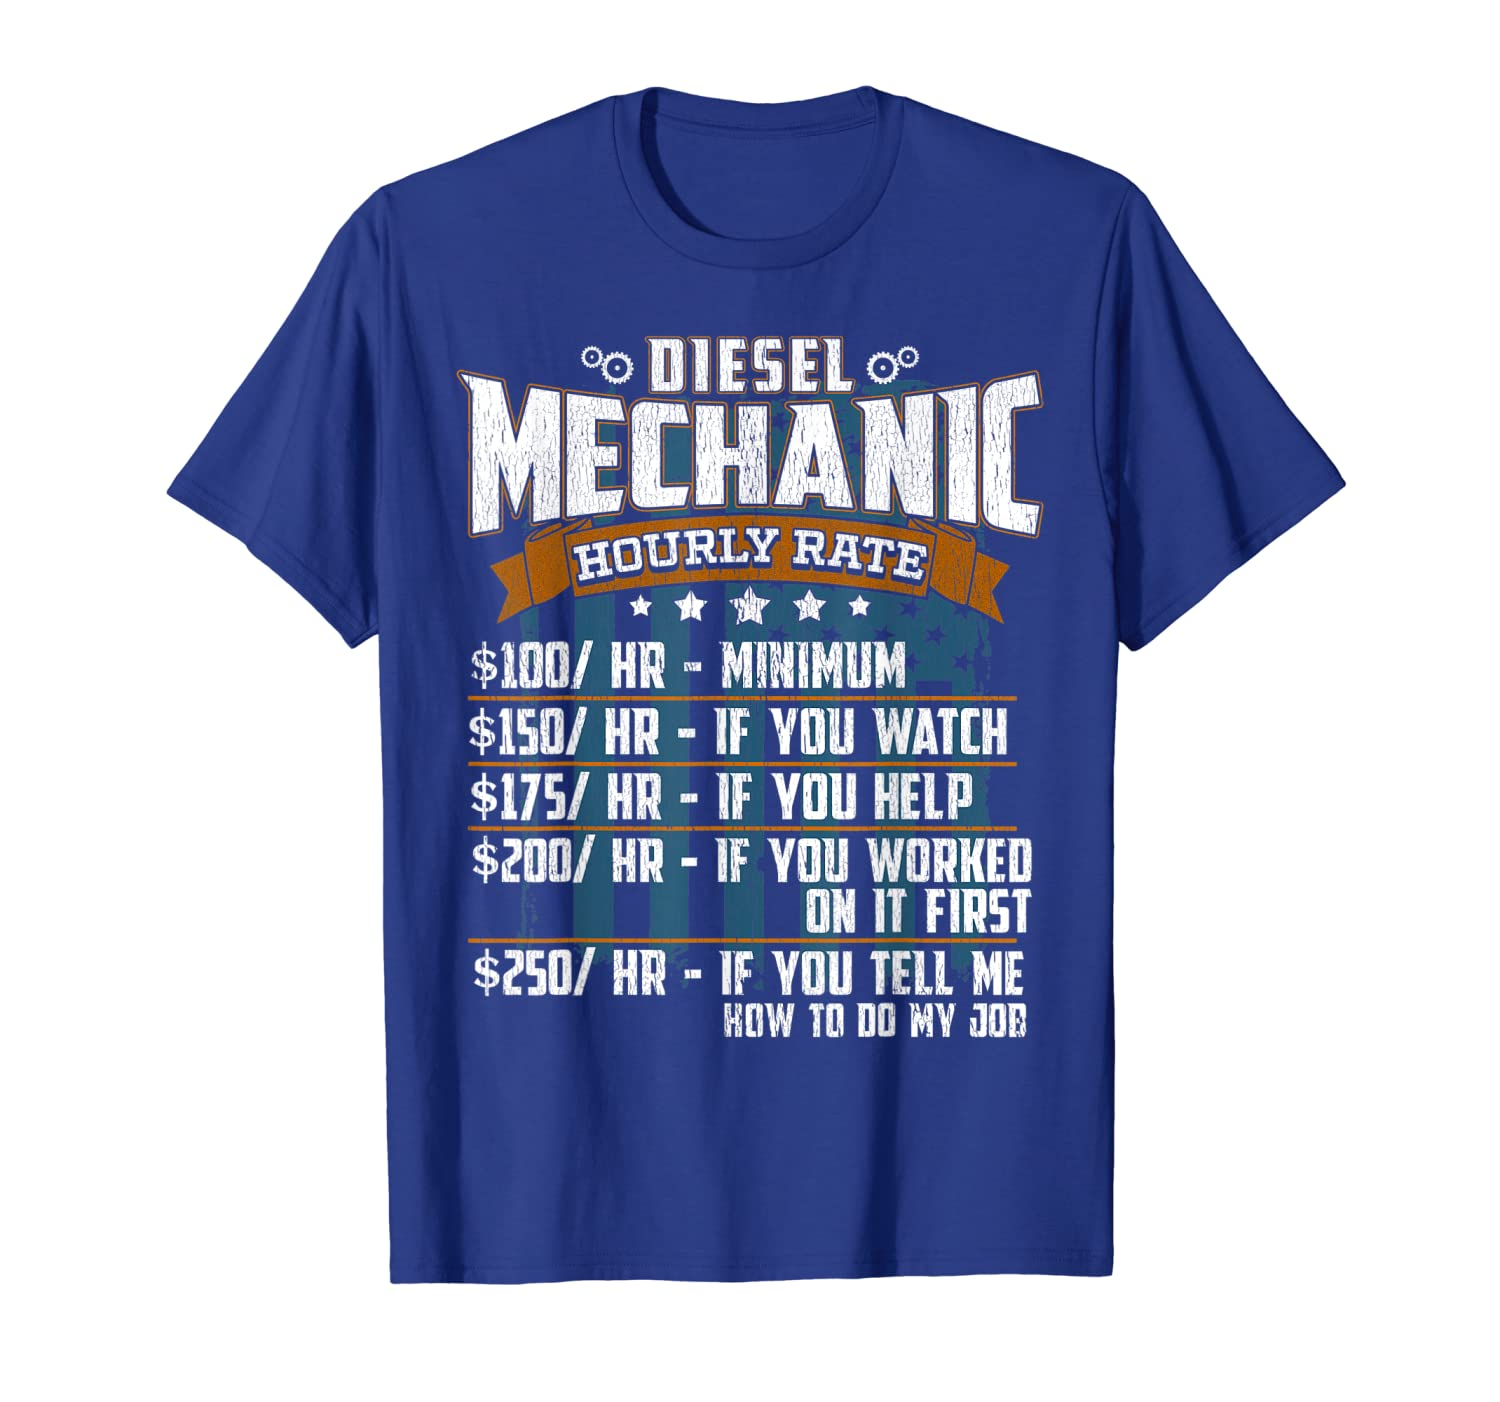 Diesel Mechanic Hourly Rate Gift T-Shirt-ANZ